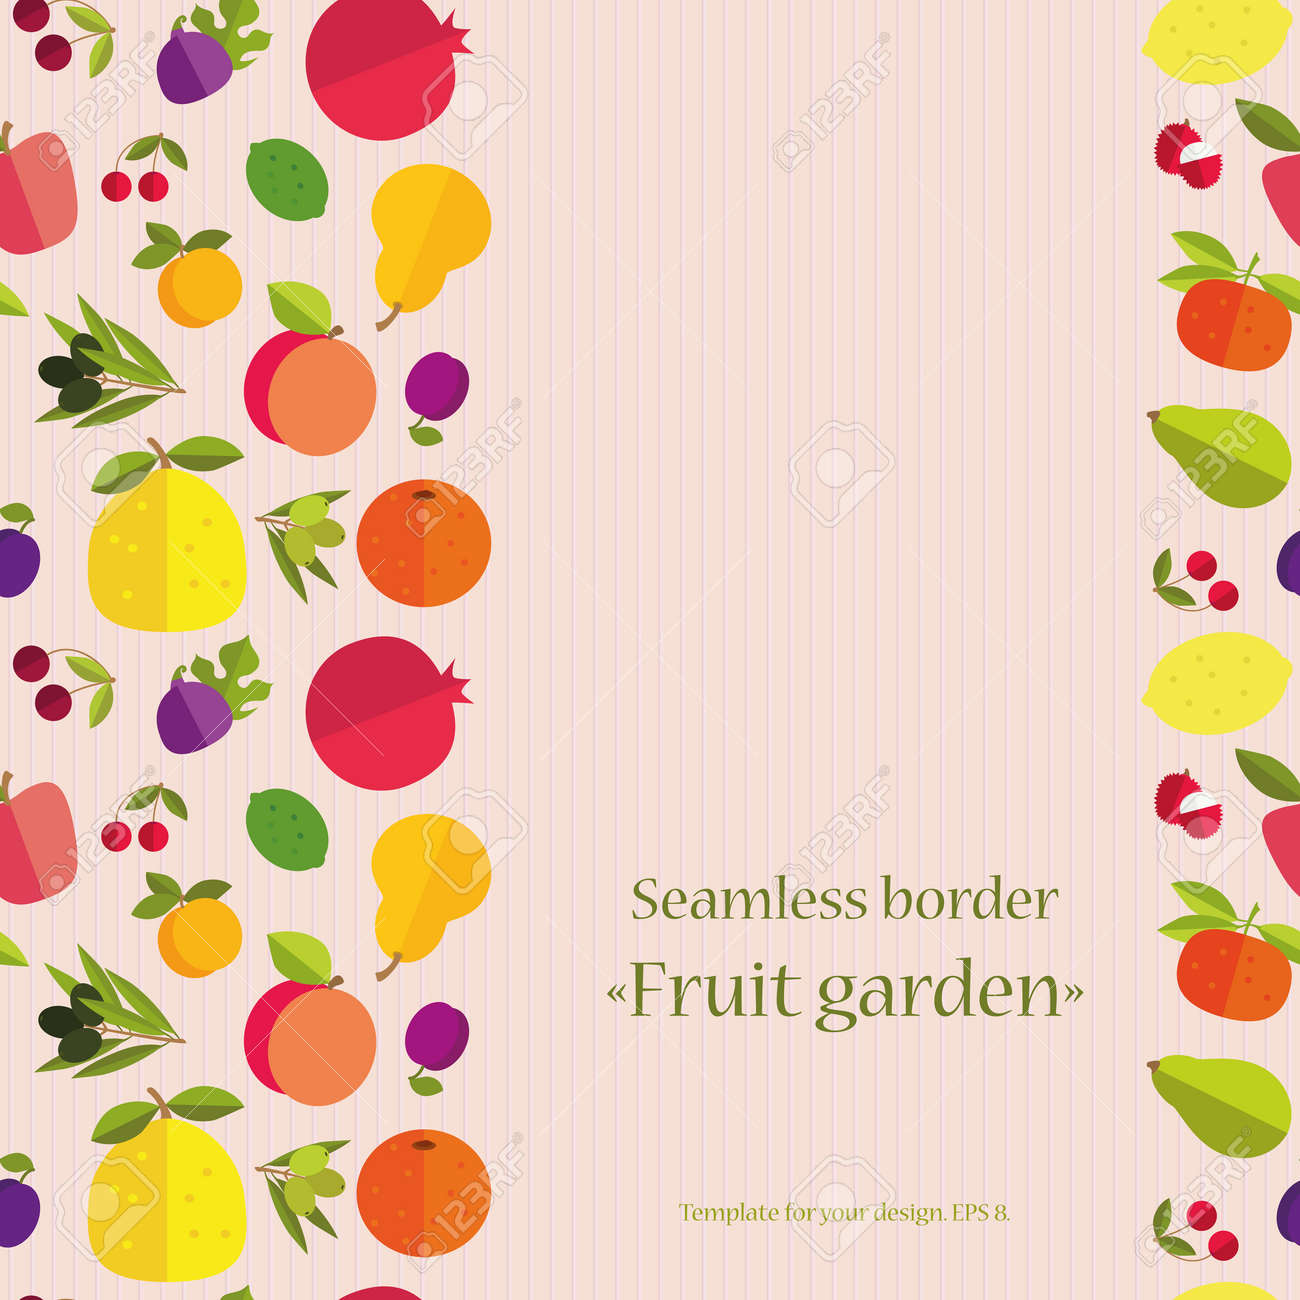 Seamless Border Of Colorful Fruits Fruit Garden Template For